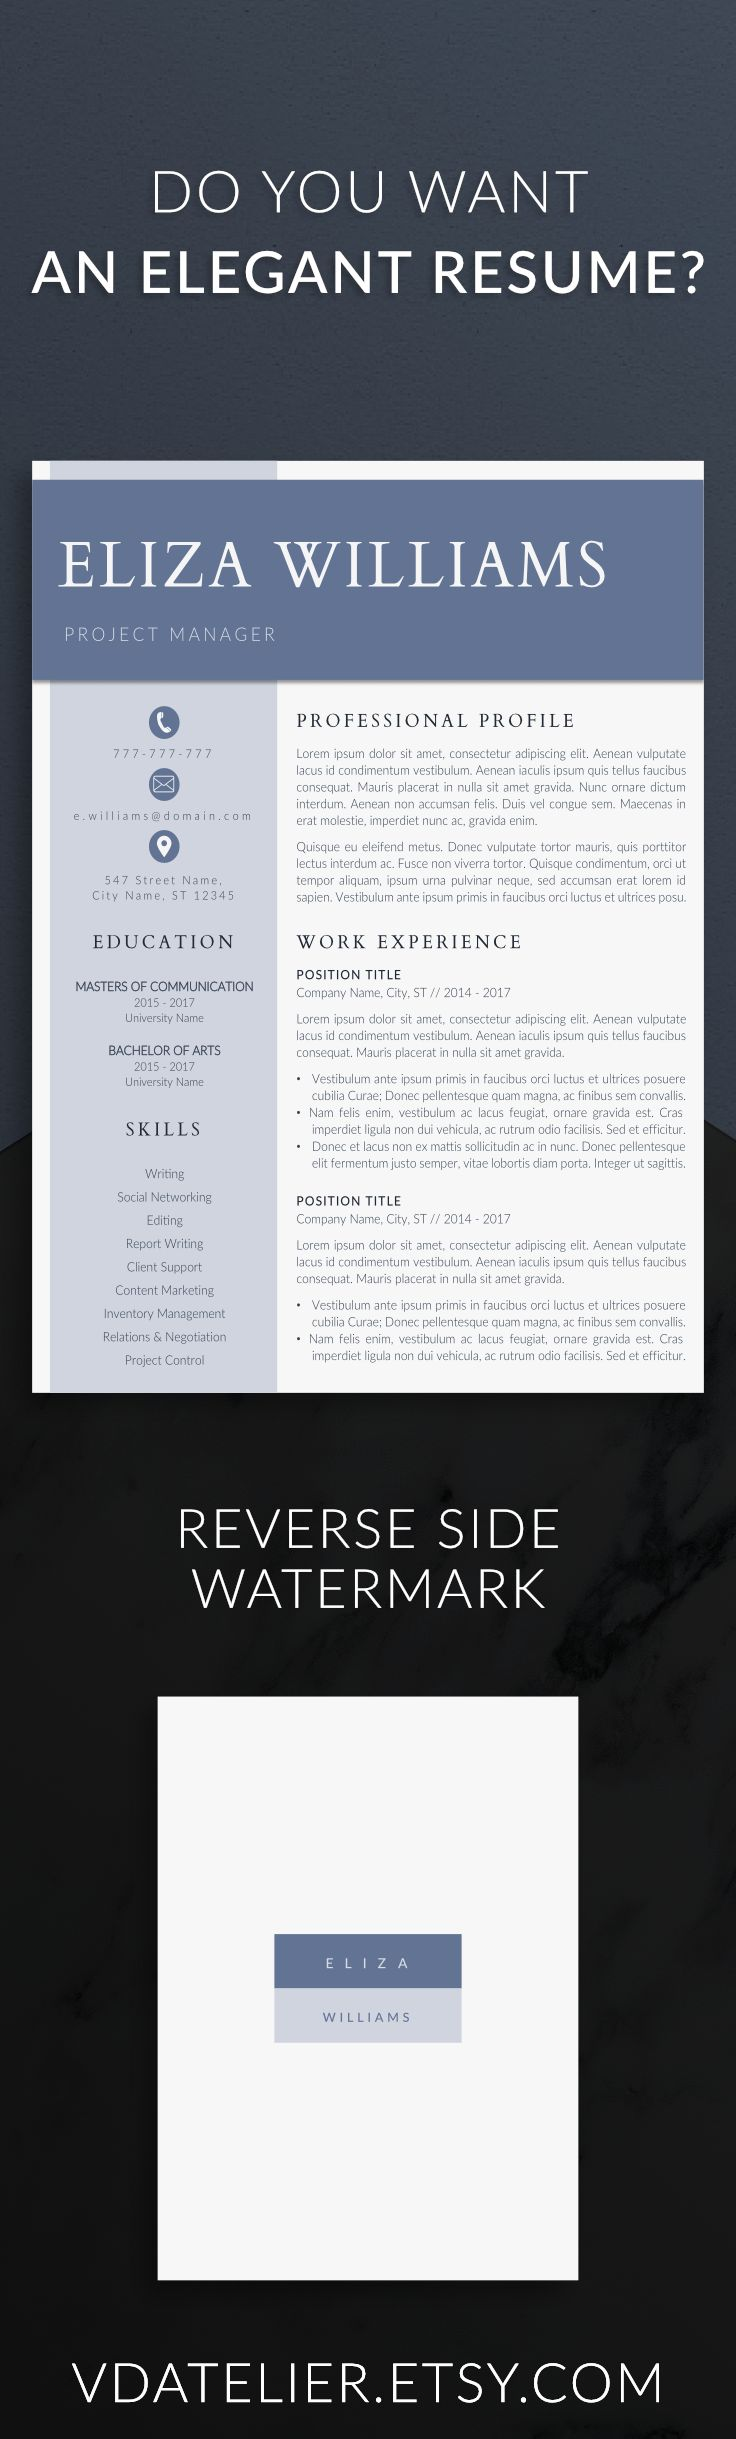 32 Best Modern Resume Templates Images On Pinterest | Modern Resume